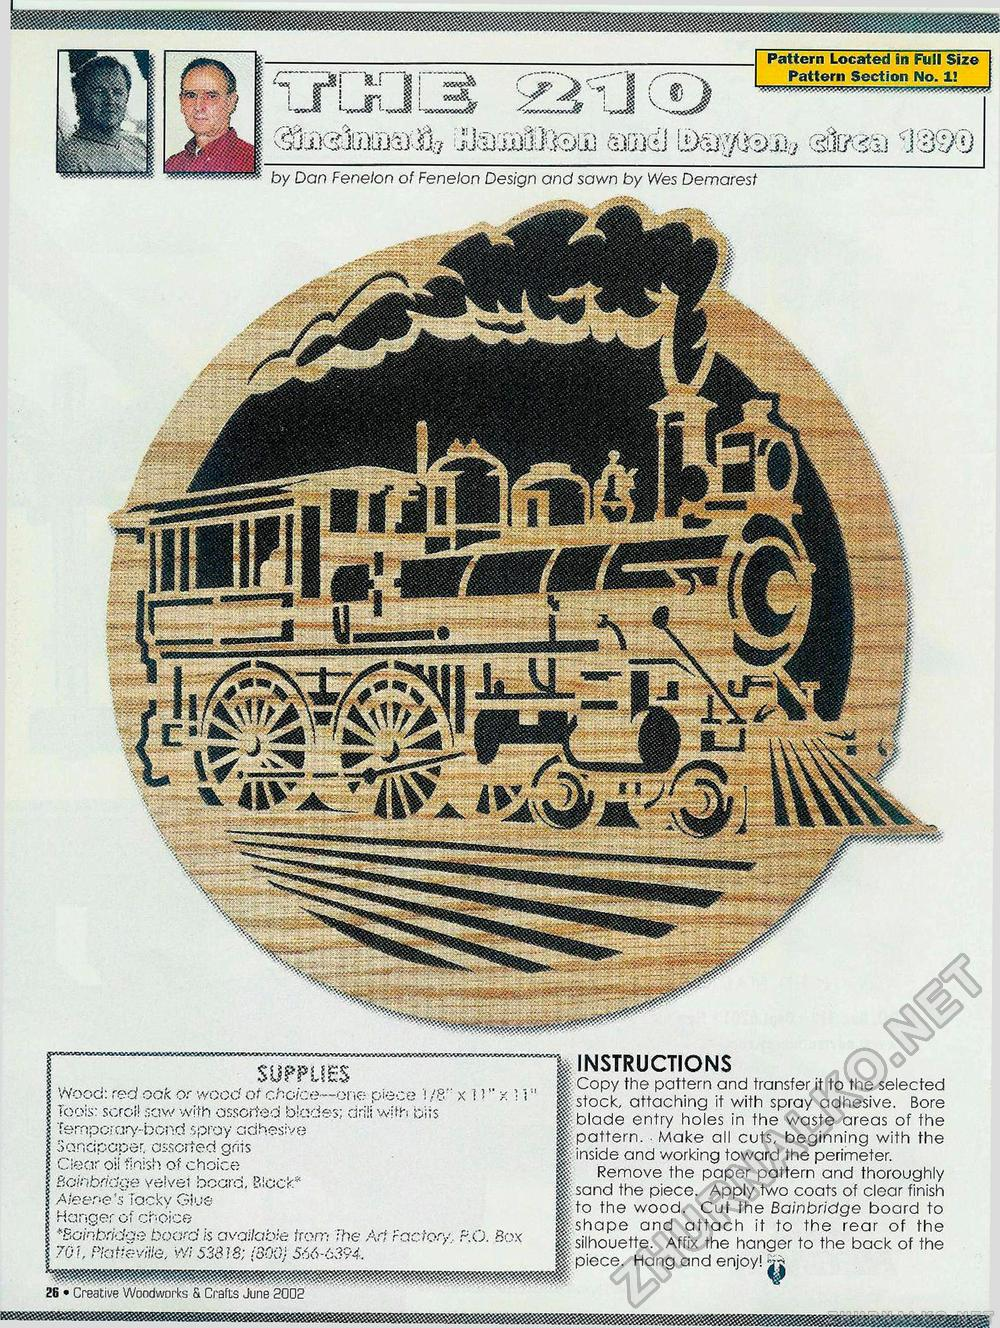 Creative Woodworks & crafts 2002-06, страница 26